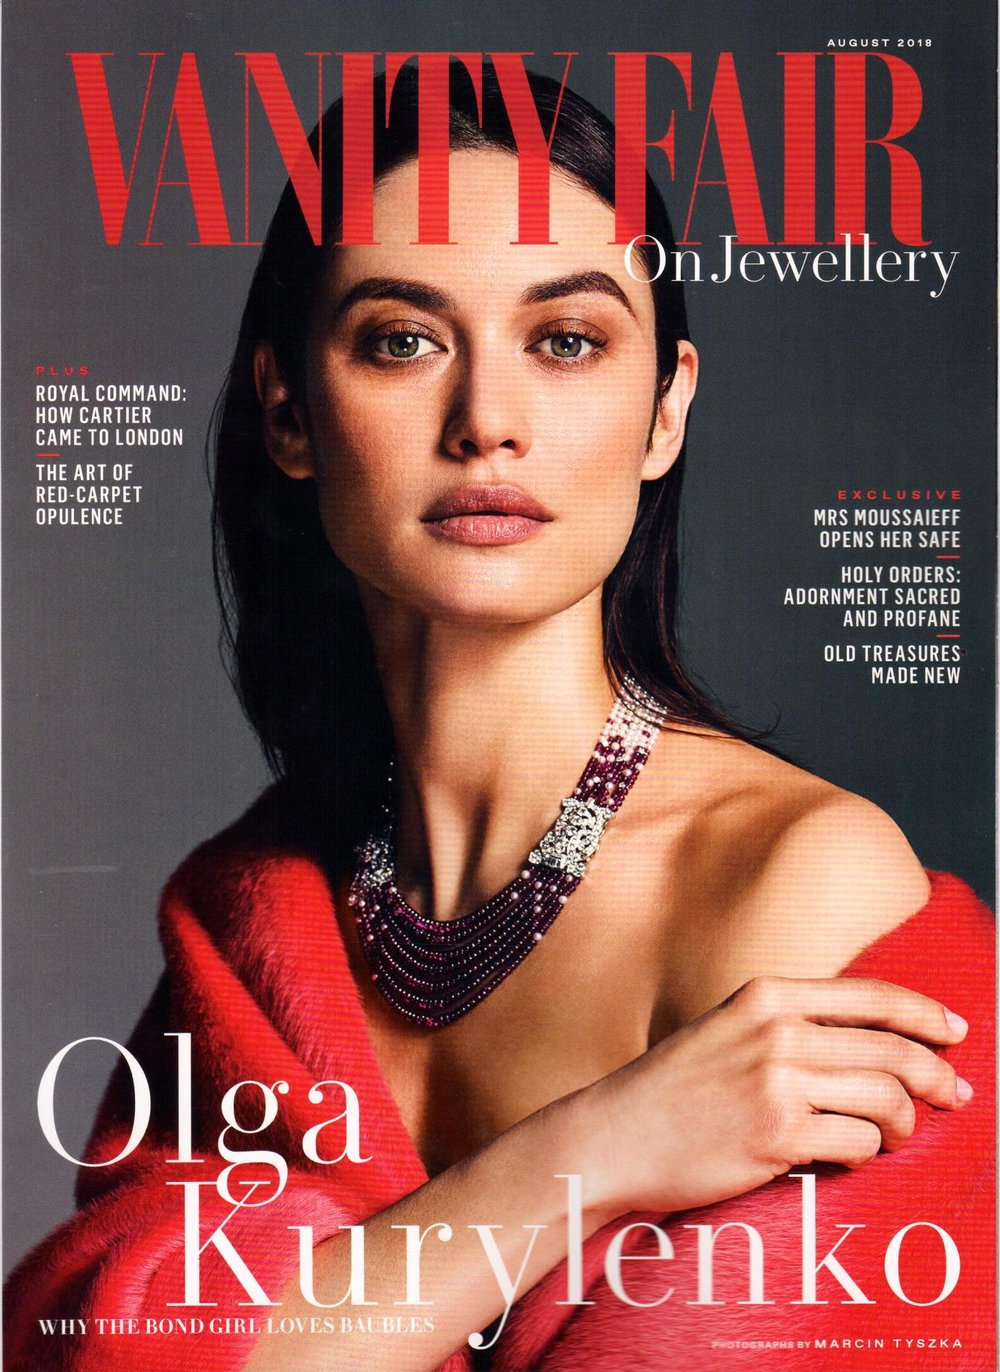 Vanity Fair Jewellery Aug 2018 cover.jpg